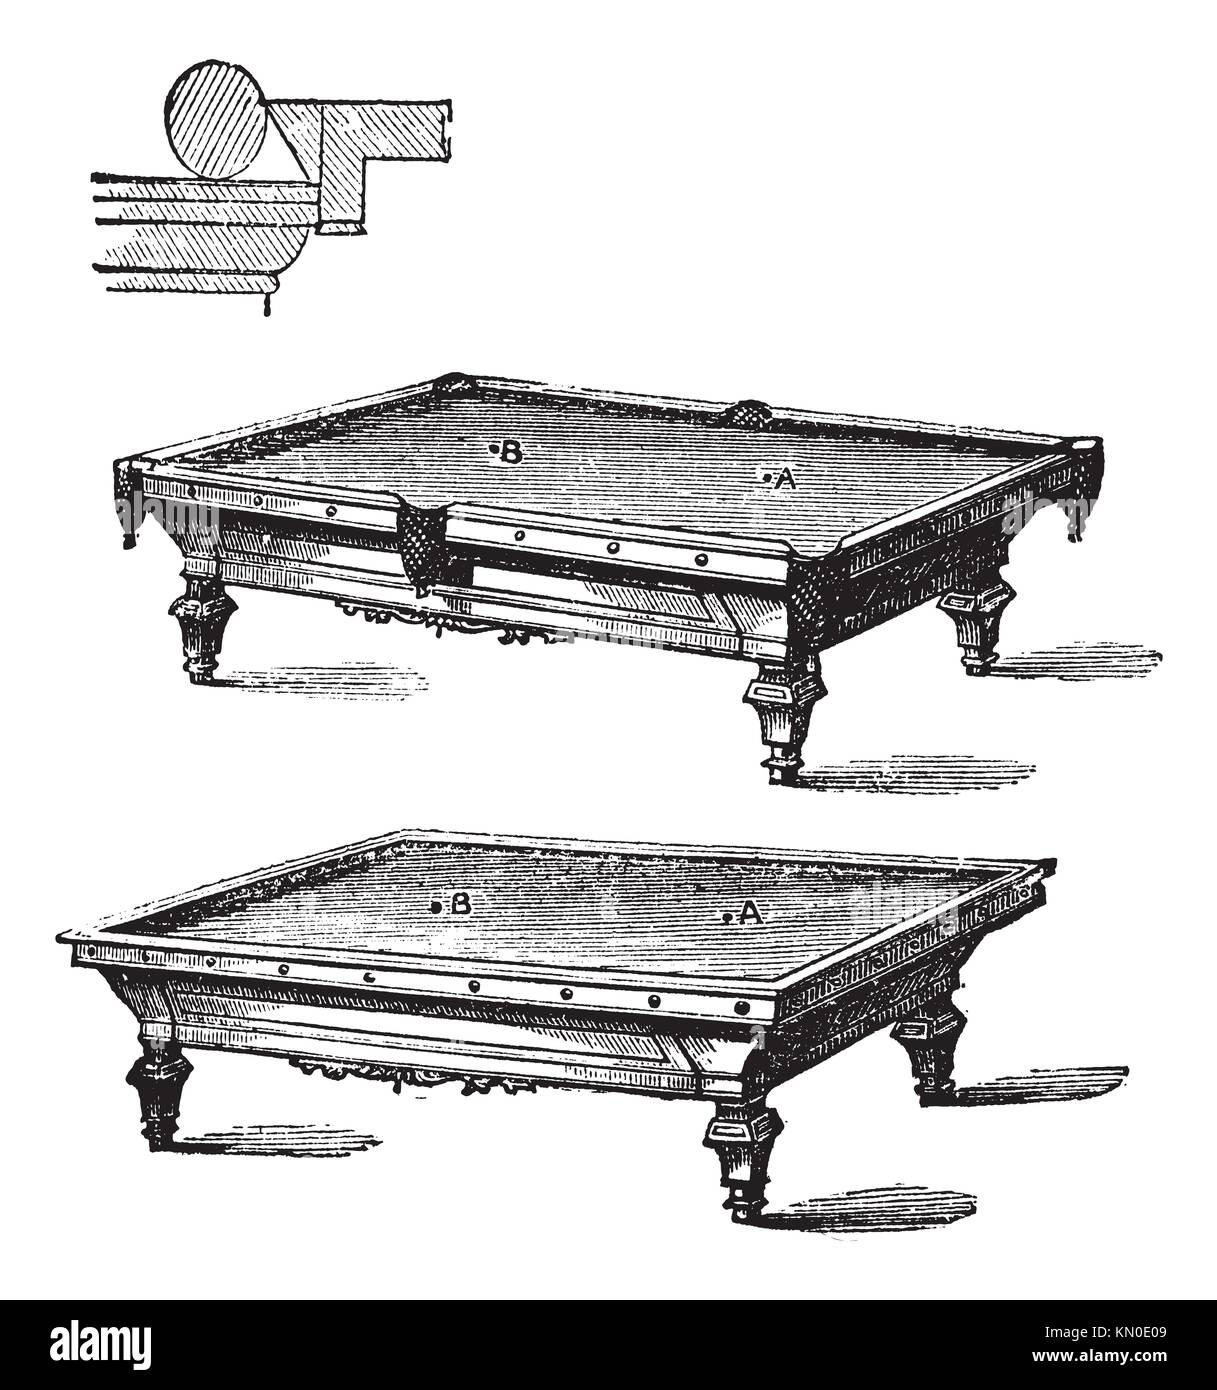 hight resolution of billiard table and carom billiards tables vintage engraved illustration of billiard table and carom